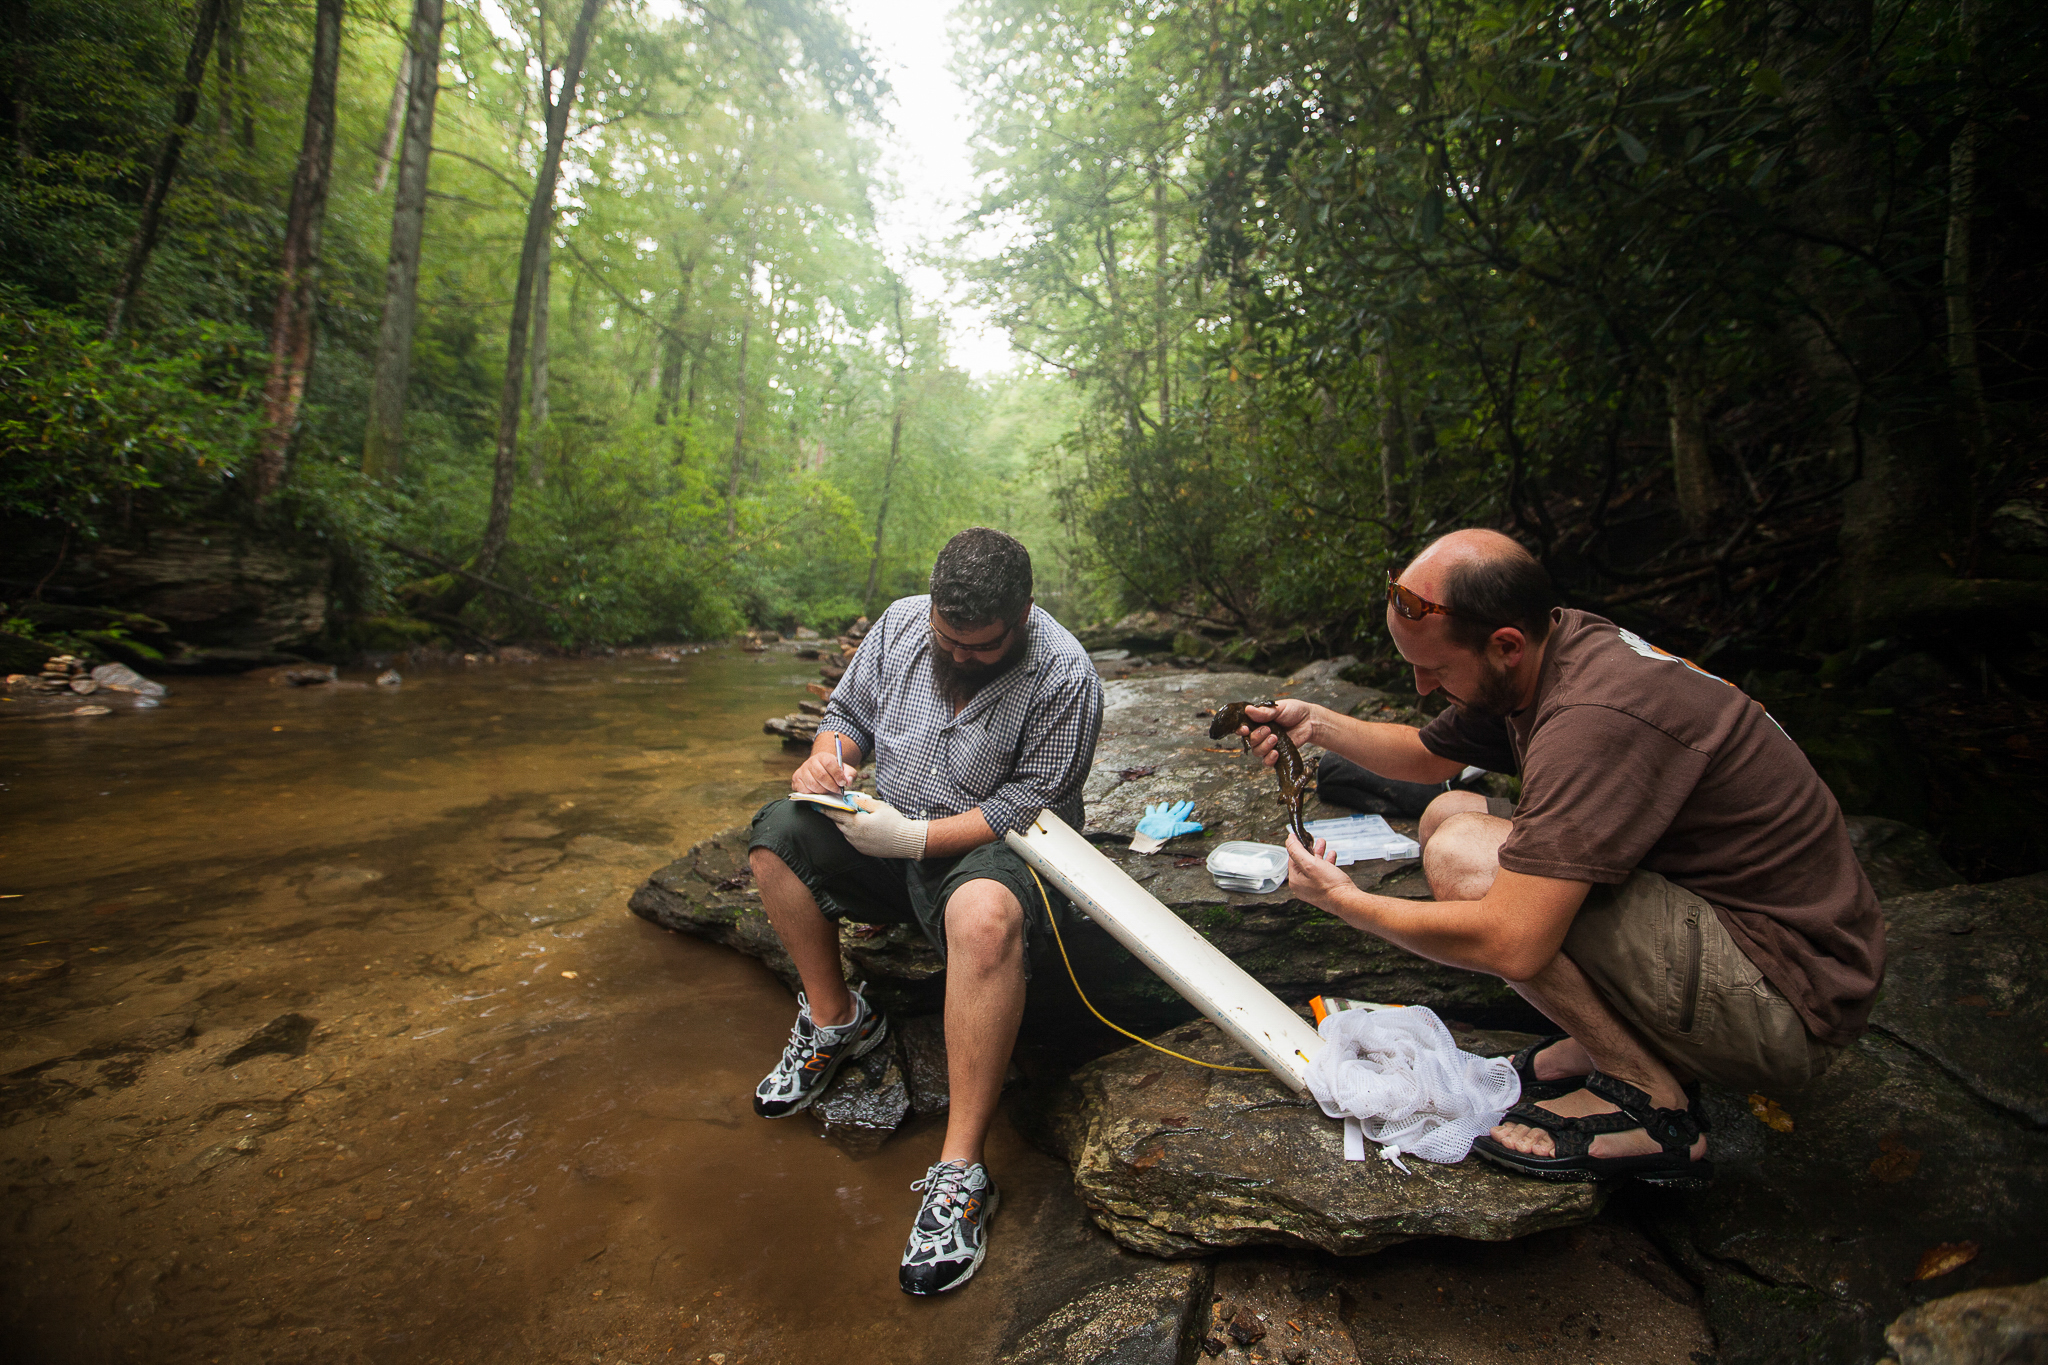 Biologists Jeff Humphries and Mike Sisson record data for an Eastern hellbender in a Southern Appalachian stream.